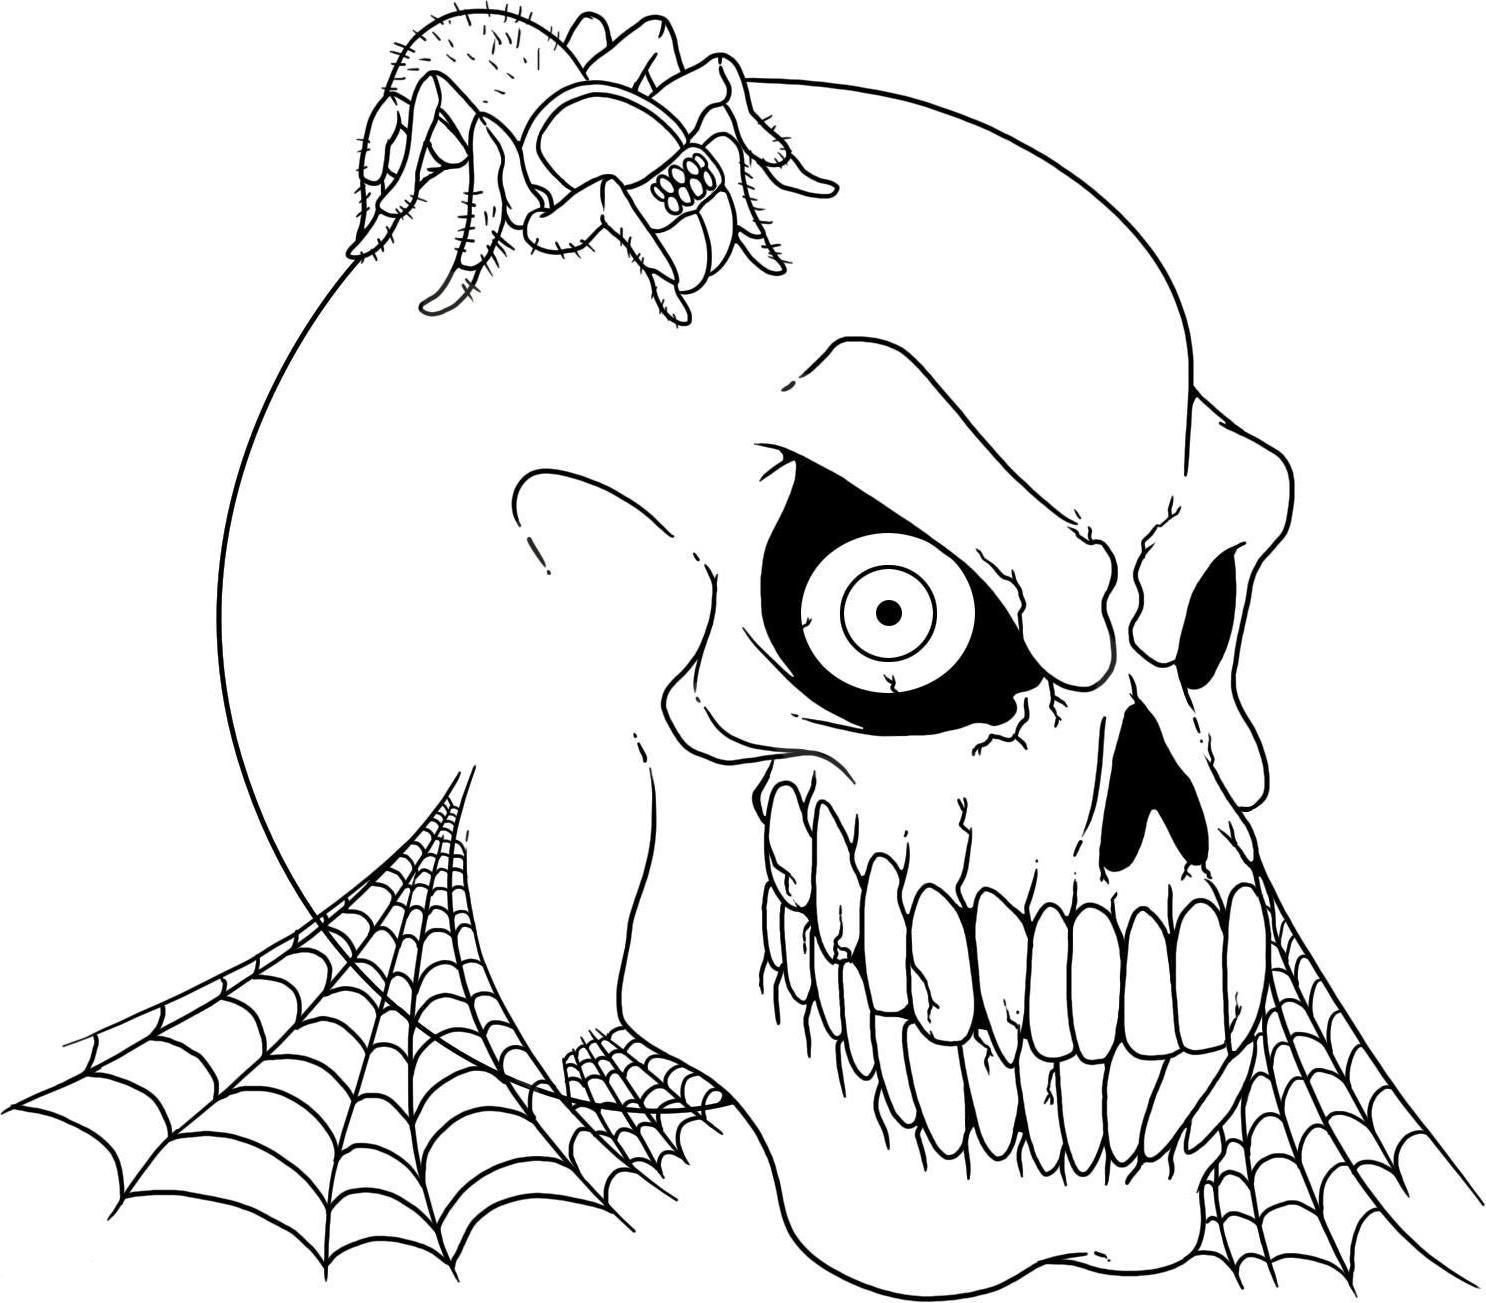 1486x1303 Halloween Skull Spider Free Coloring Page Adults, Halloween